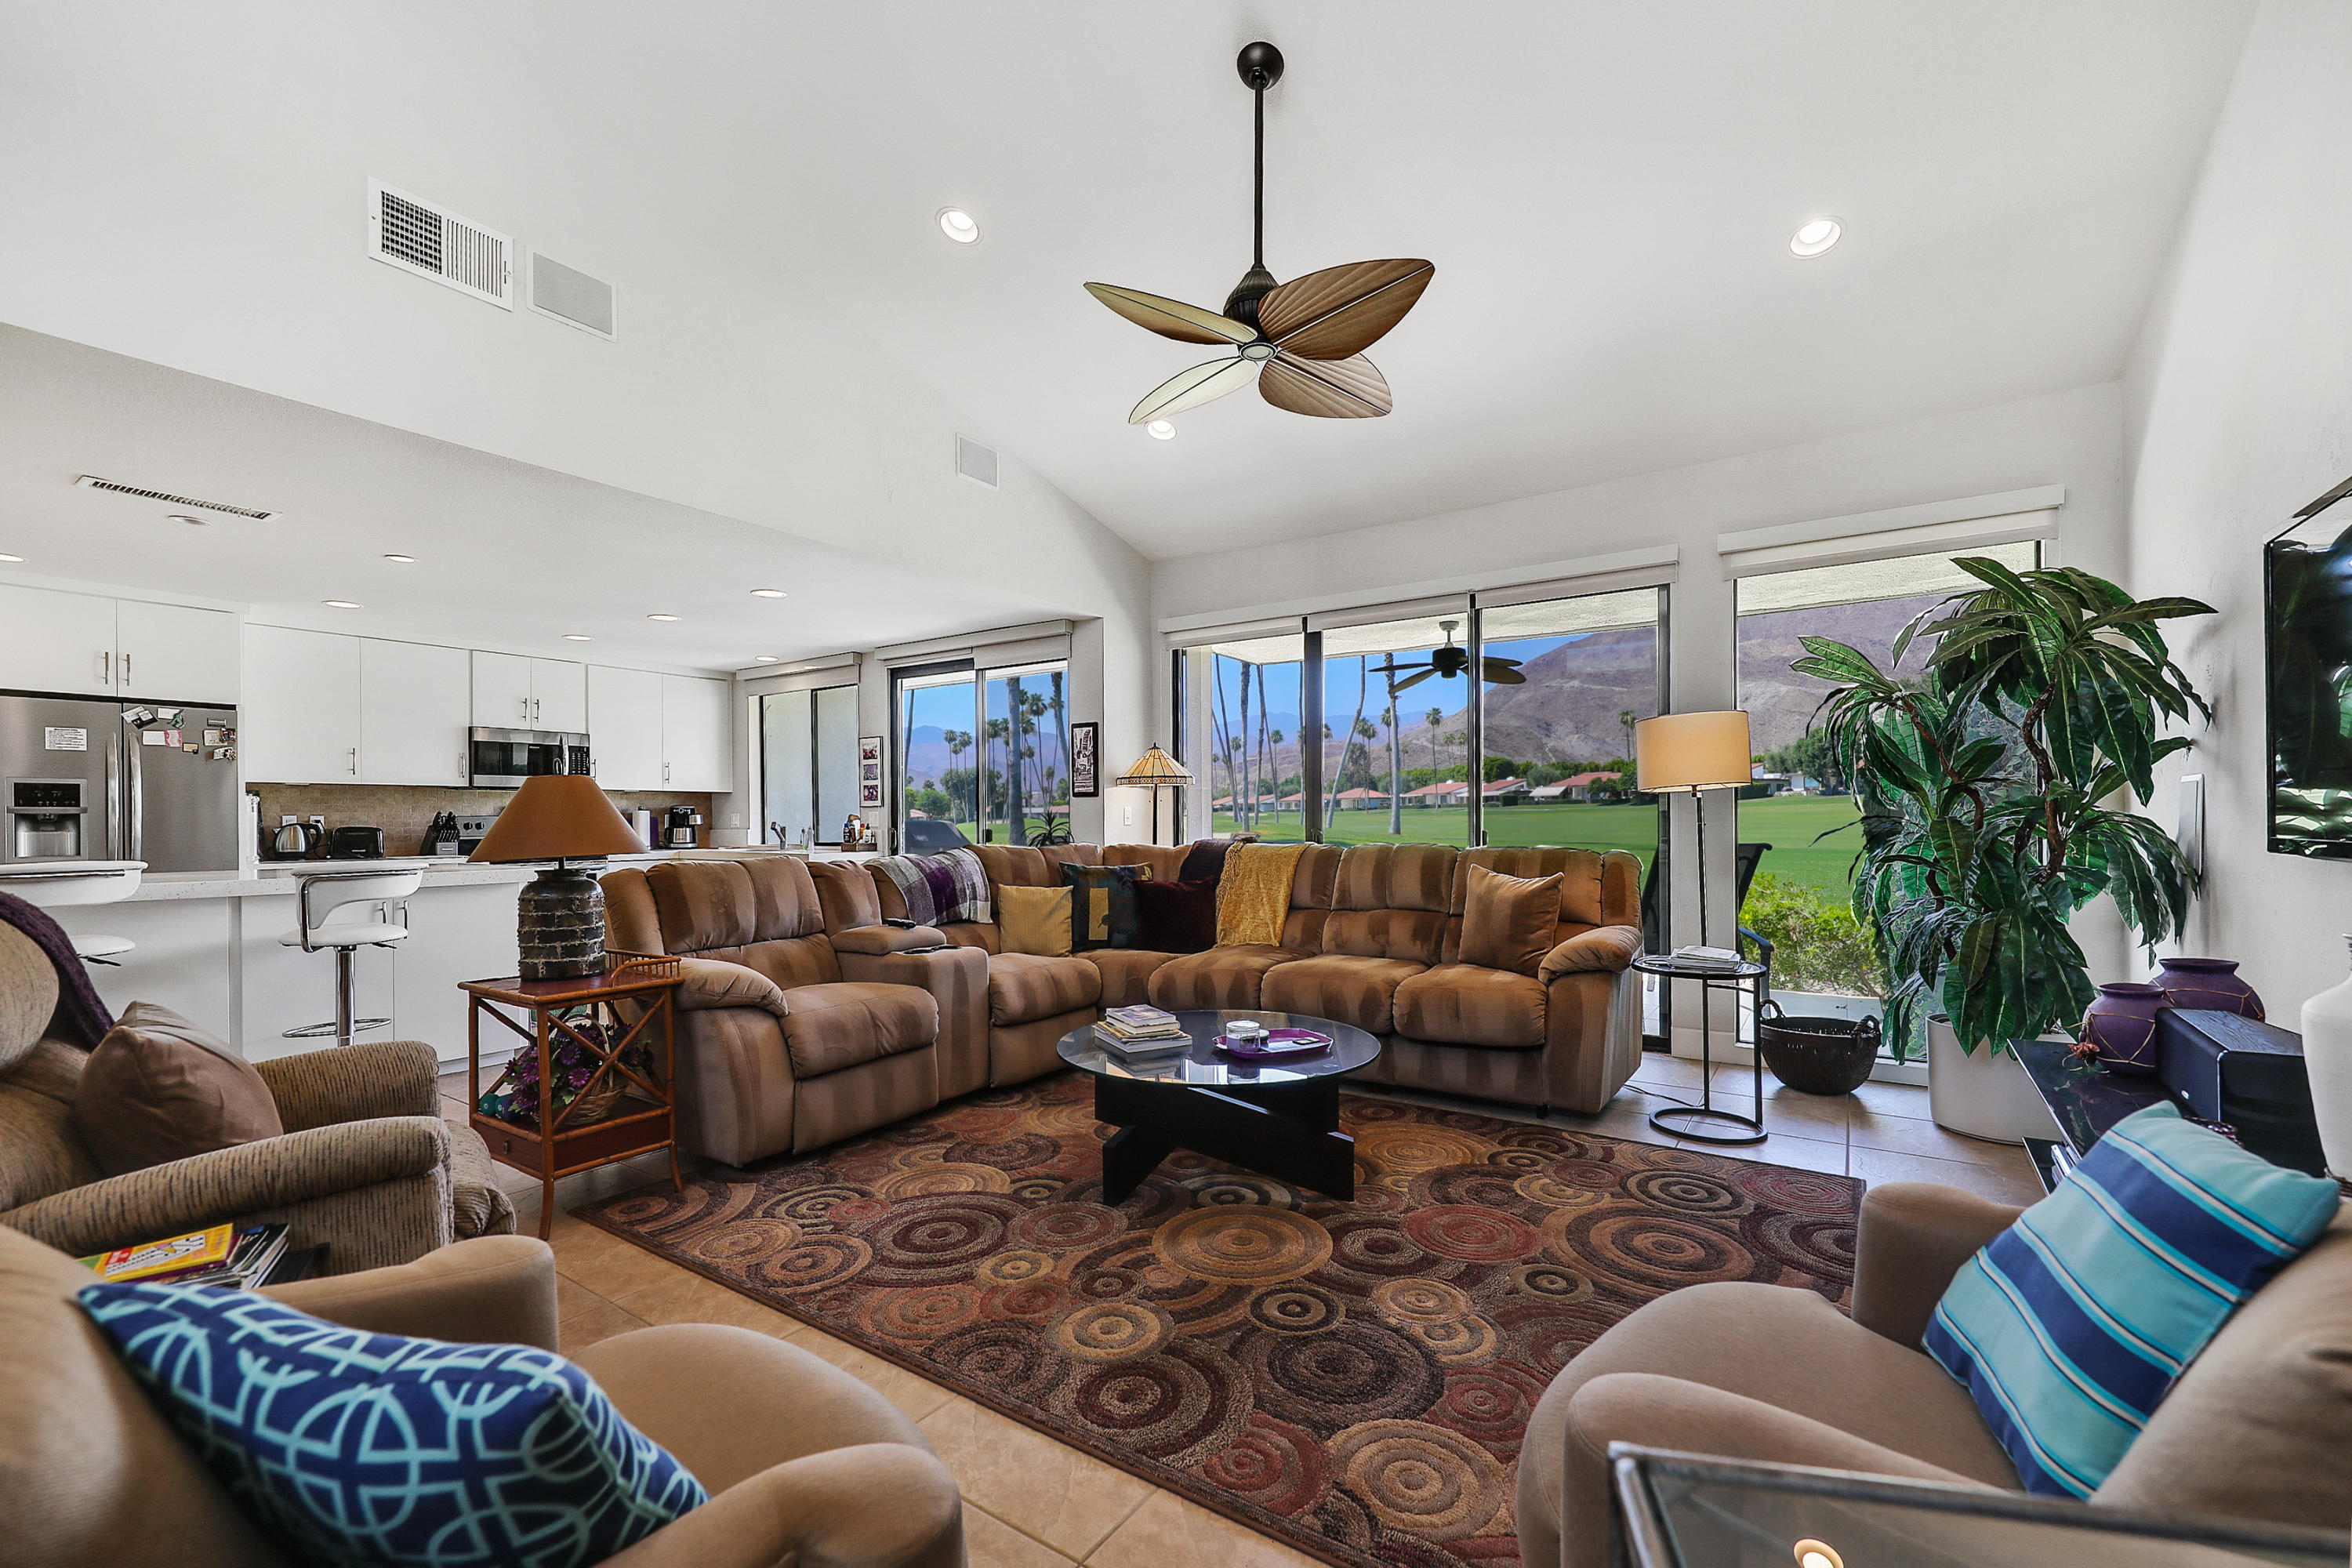 The term ''LOCATION'' is often exaggerated, however in the instance it is actually understated! This magnificent condo in the Rancho Las Palmas Country Club is within easy walking distance of ''The River'' shopping center, the OMNI Hotel and the clubhouse. Located on the 7th hole of the west course it has an extra wide fairway view plus you can actually see people walking on the ''Bump-and-grind'' trail in the southern mountain view. Completely professionally remodeled to have that open concept with all amenities. This spectacular 2 bedroom, 2 bathroom condo would make a wonderful vacation getaway or even a full time residence. It is being sold turn key furnished and includes quartz counters, stainless steel appliances in the kitchen and totally remodeled bathrooms with tile showers.